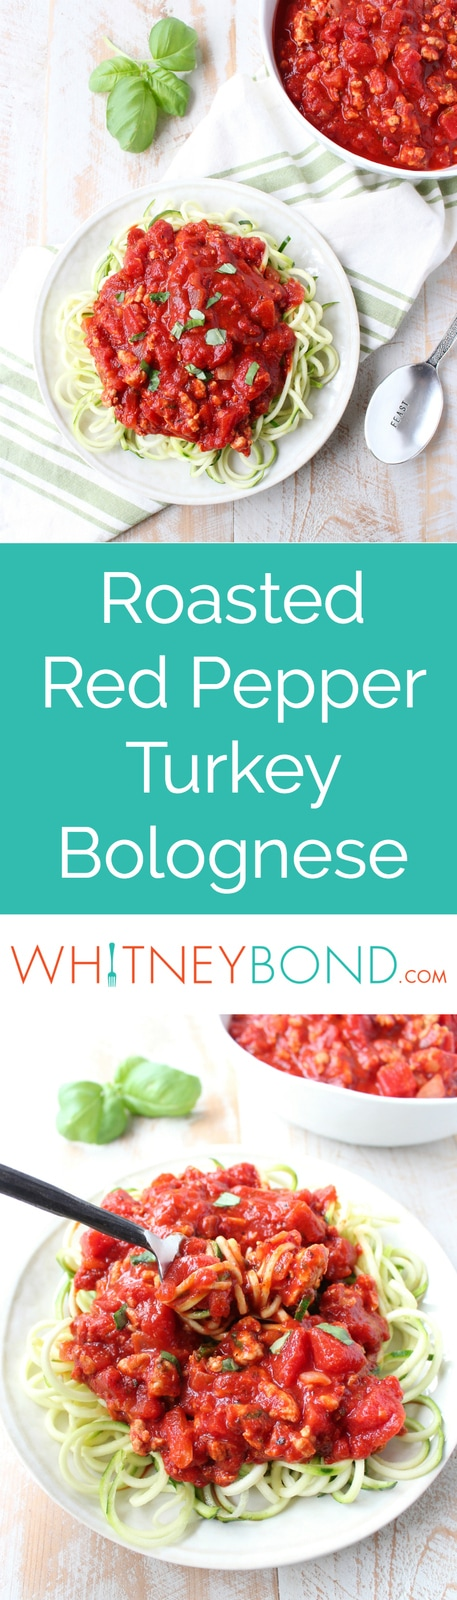 Roasted red peppers add a delicious flavor to this Turkey Bolognese ...